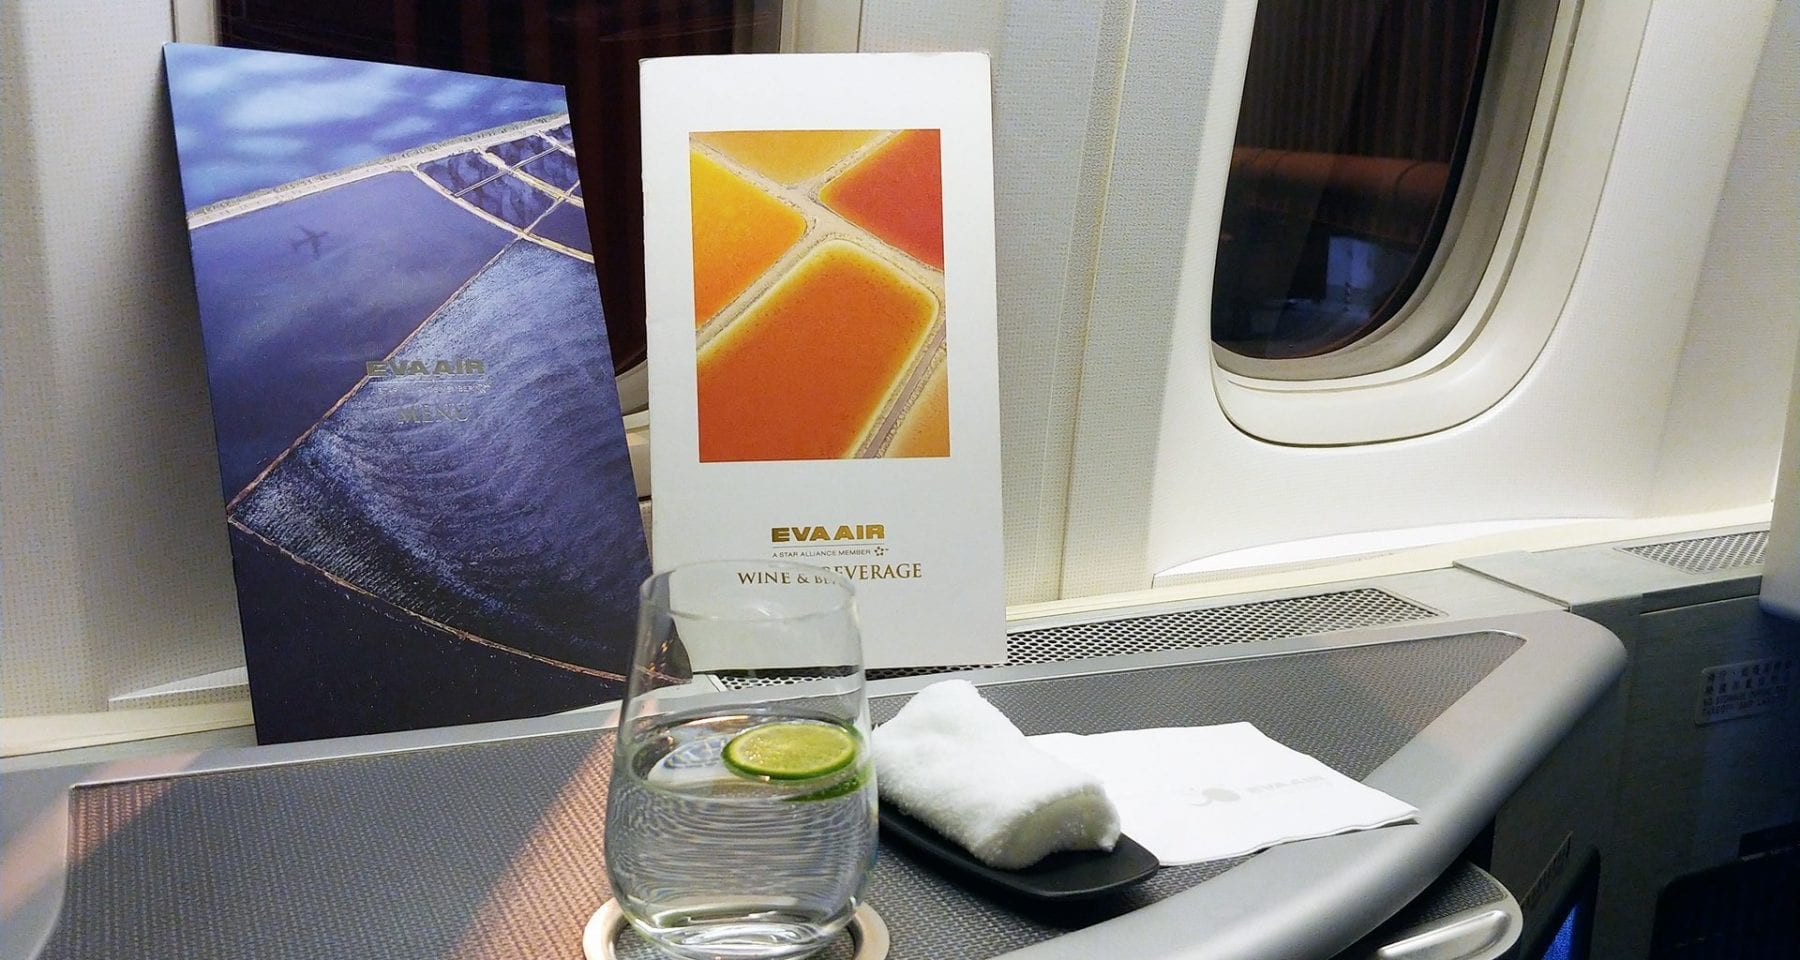 Eva Air welcome drink, hot towel and inflight menu business class